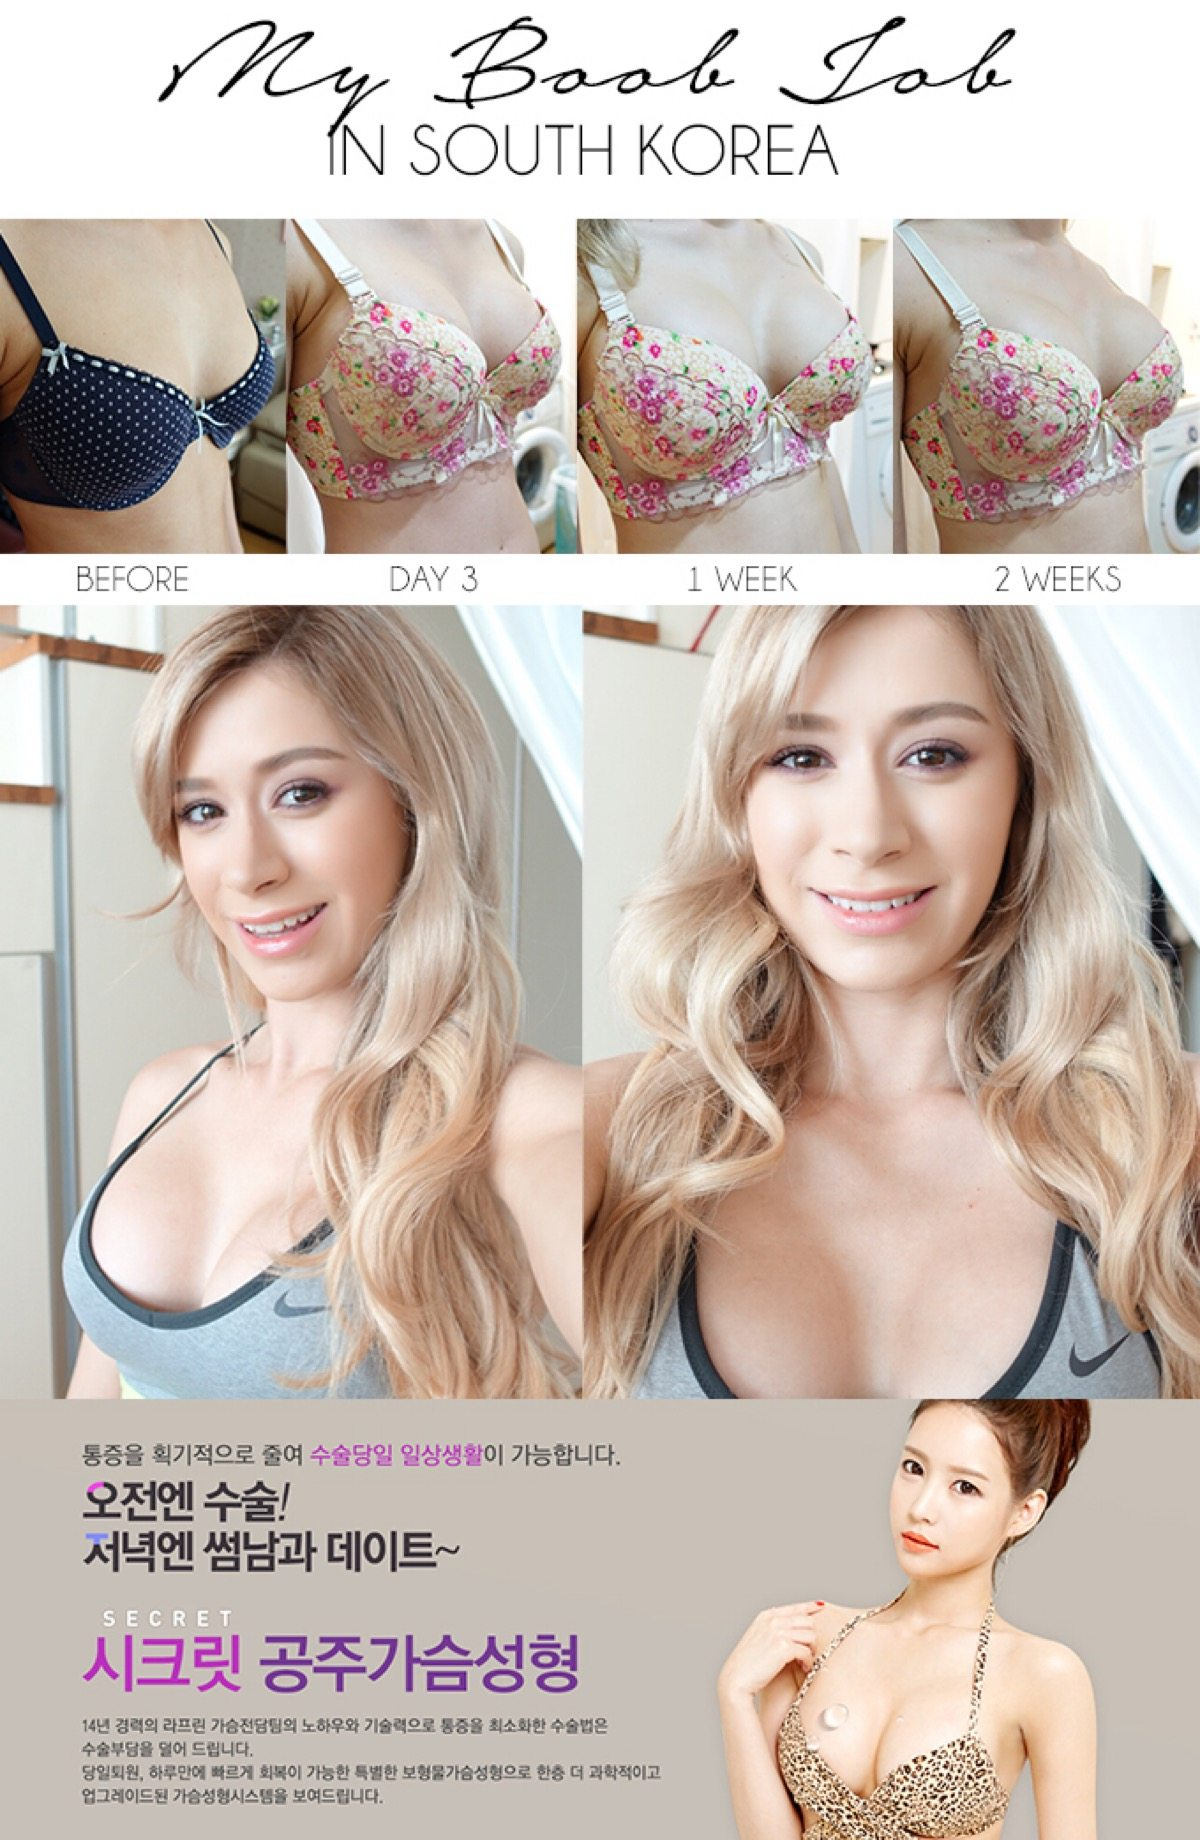 how plastic surgery promotes beauty Cosmetic surgery is a type of plastic surgery that aims to improve appearance find out about the types available and get some tips on choosing wisely.